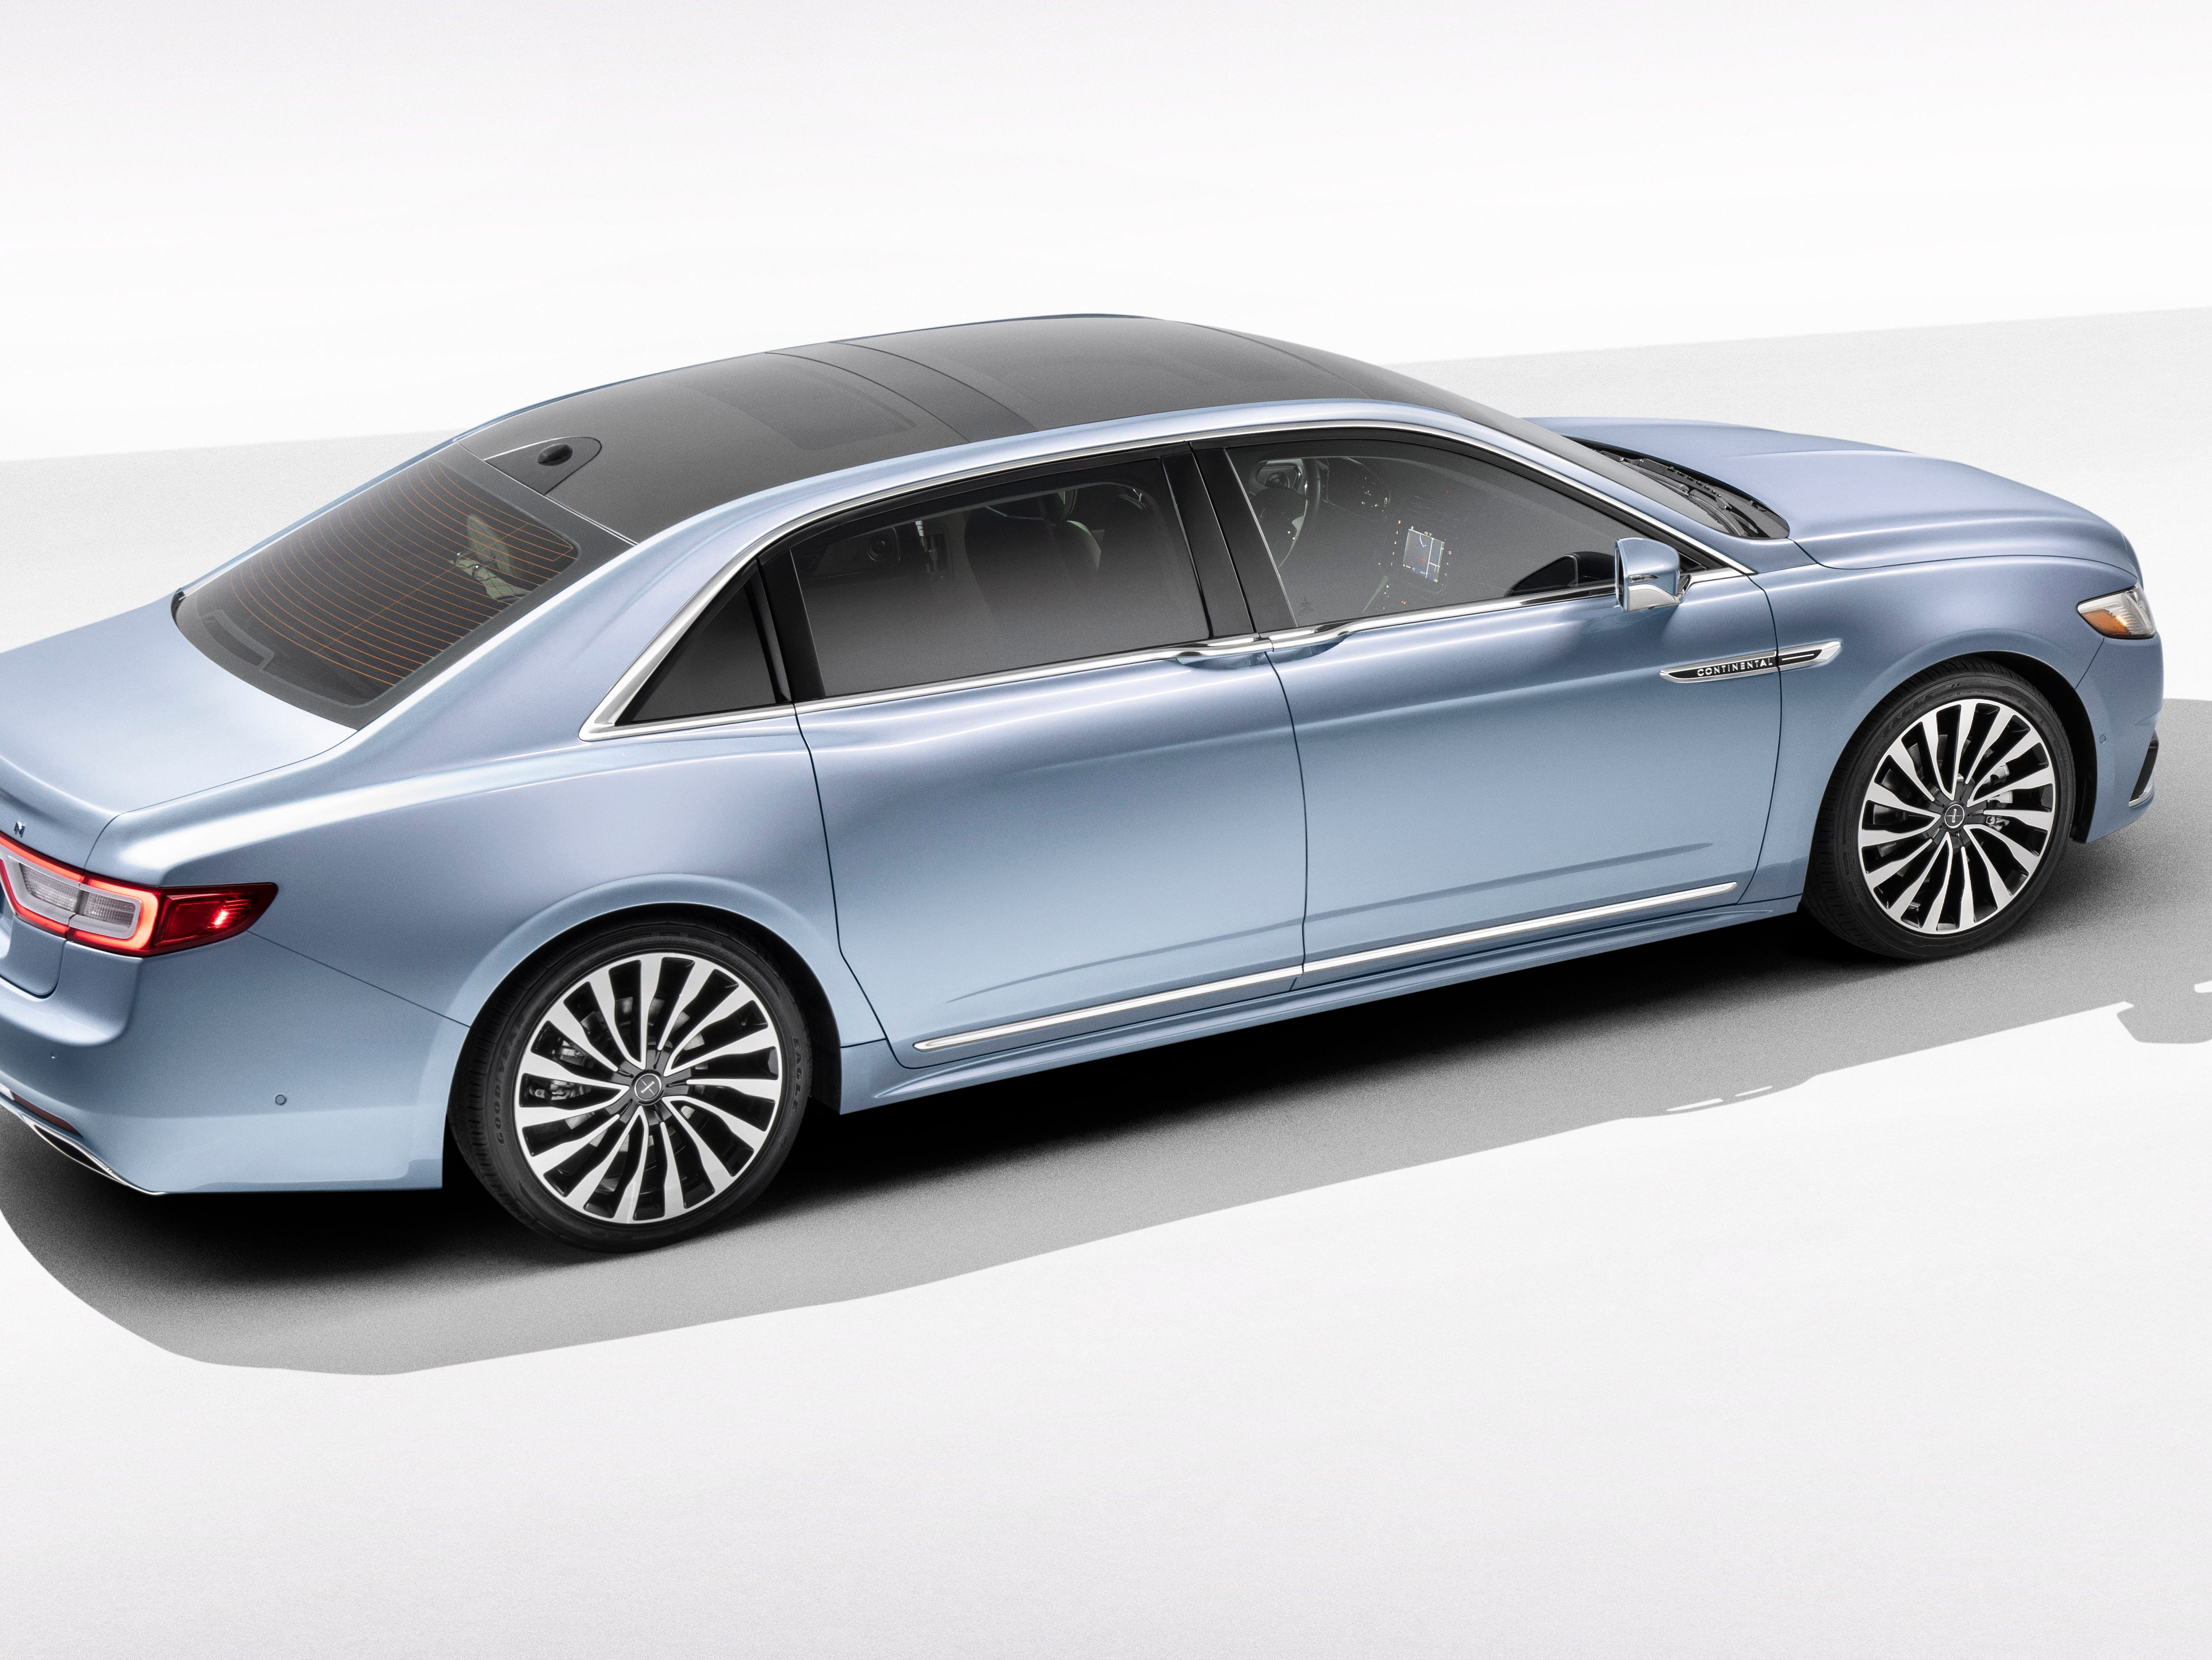 The Lincoln Continental Coach Door Edition will retail for slightly more than $100,000 when it goes on sale in the summer of 2019.